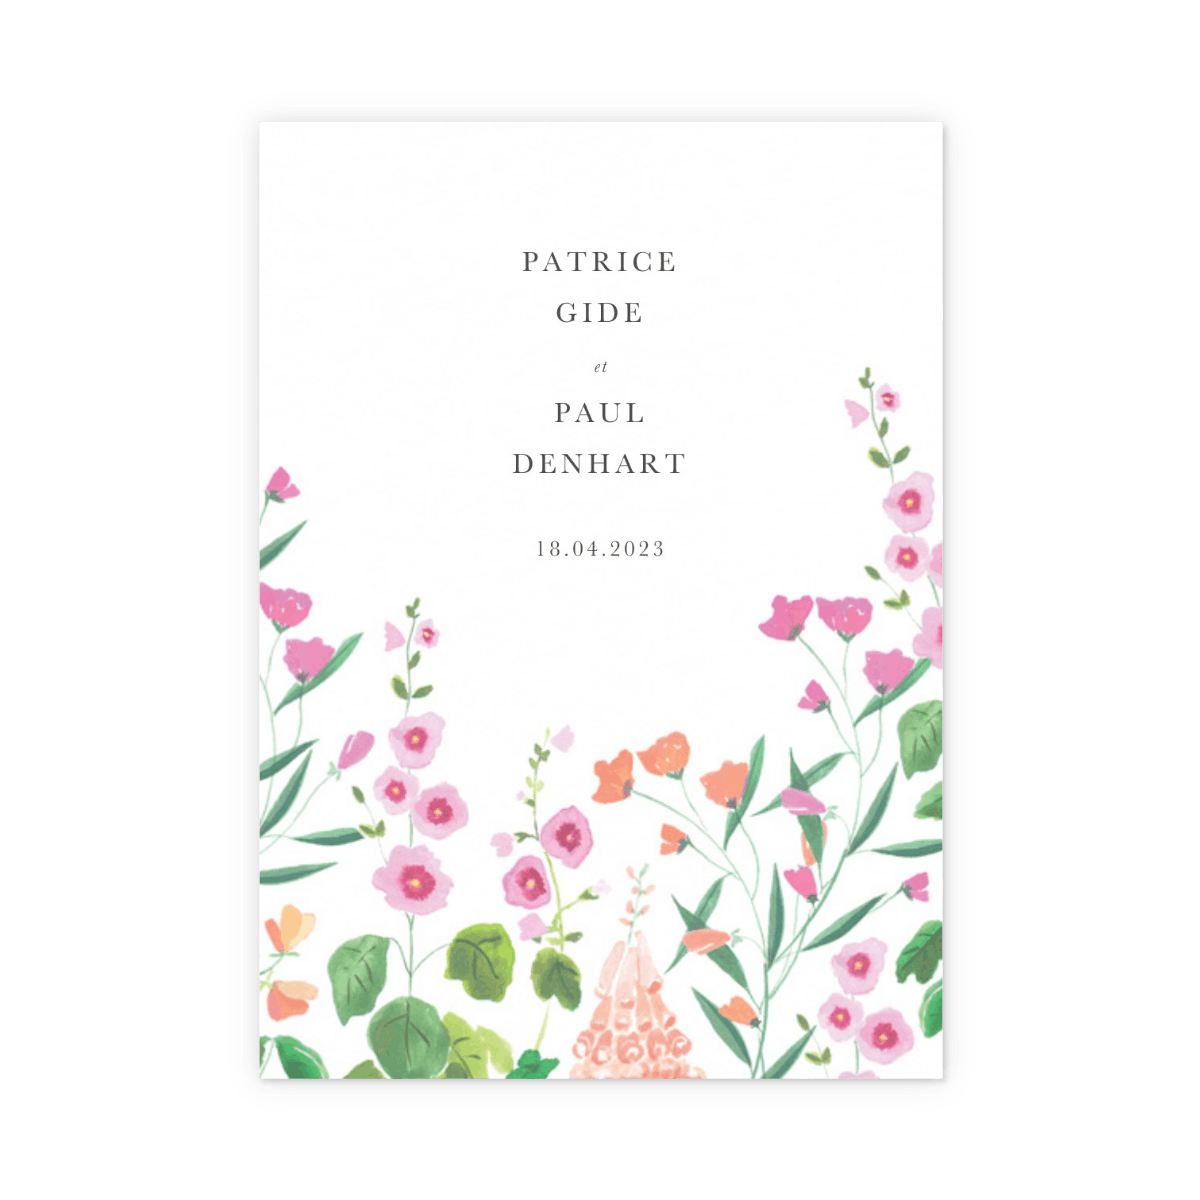 Https%3a%2f%2fwww.papier.com%2fproduct image%2f62873%2f4%2fsweetpea hollyhocks 14549 arriere 1548685066.png?ixlib=rb 1.1